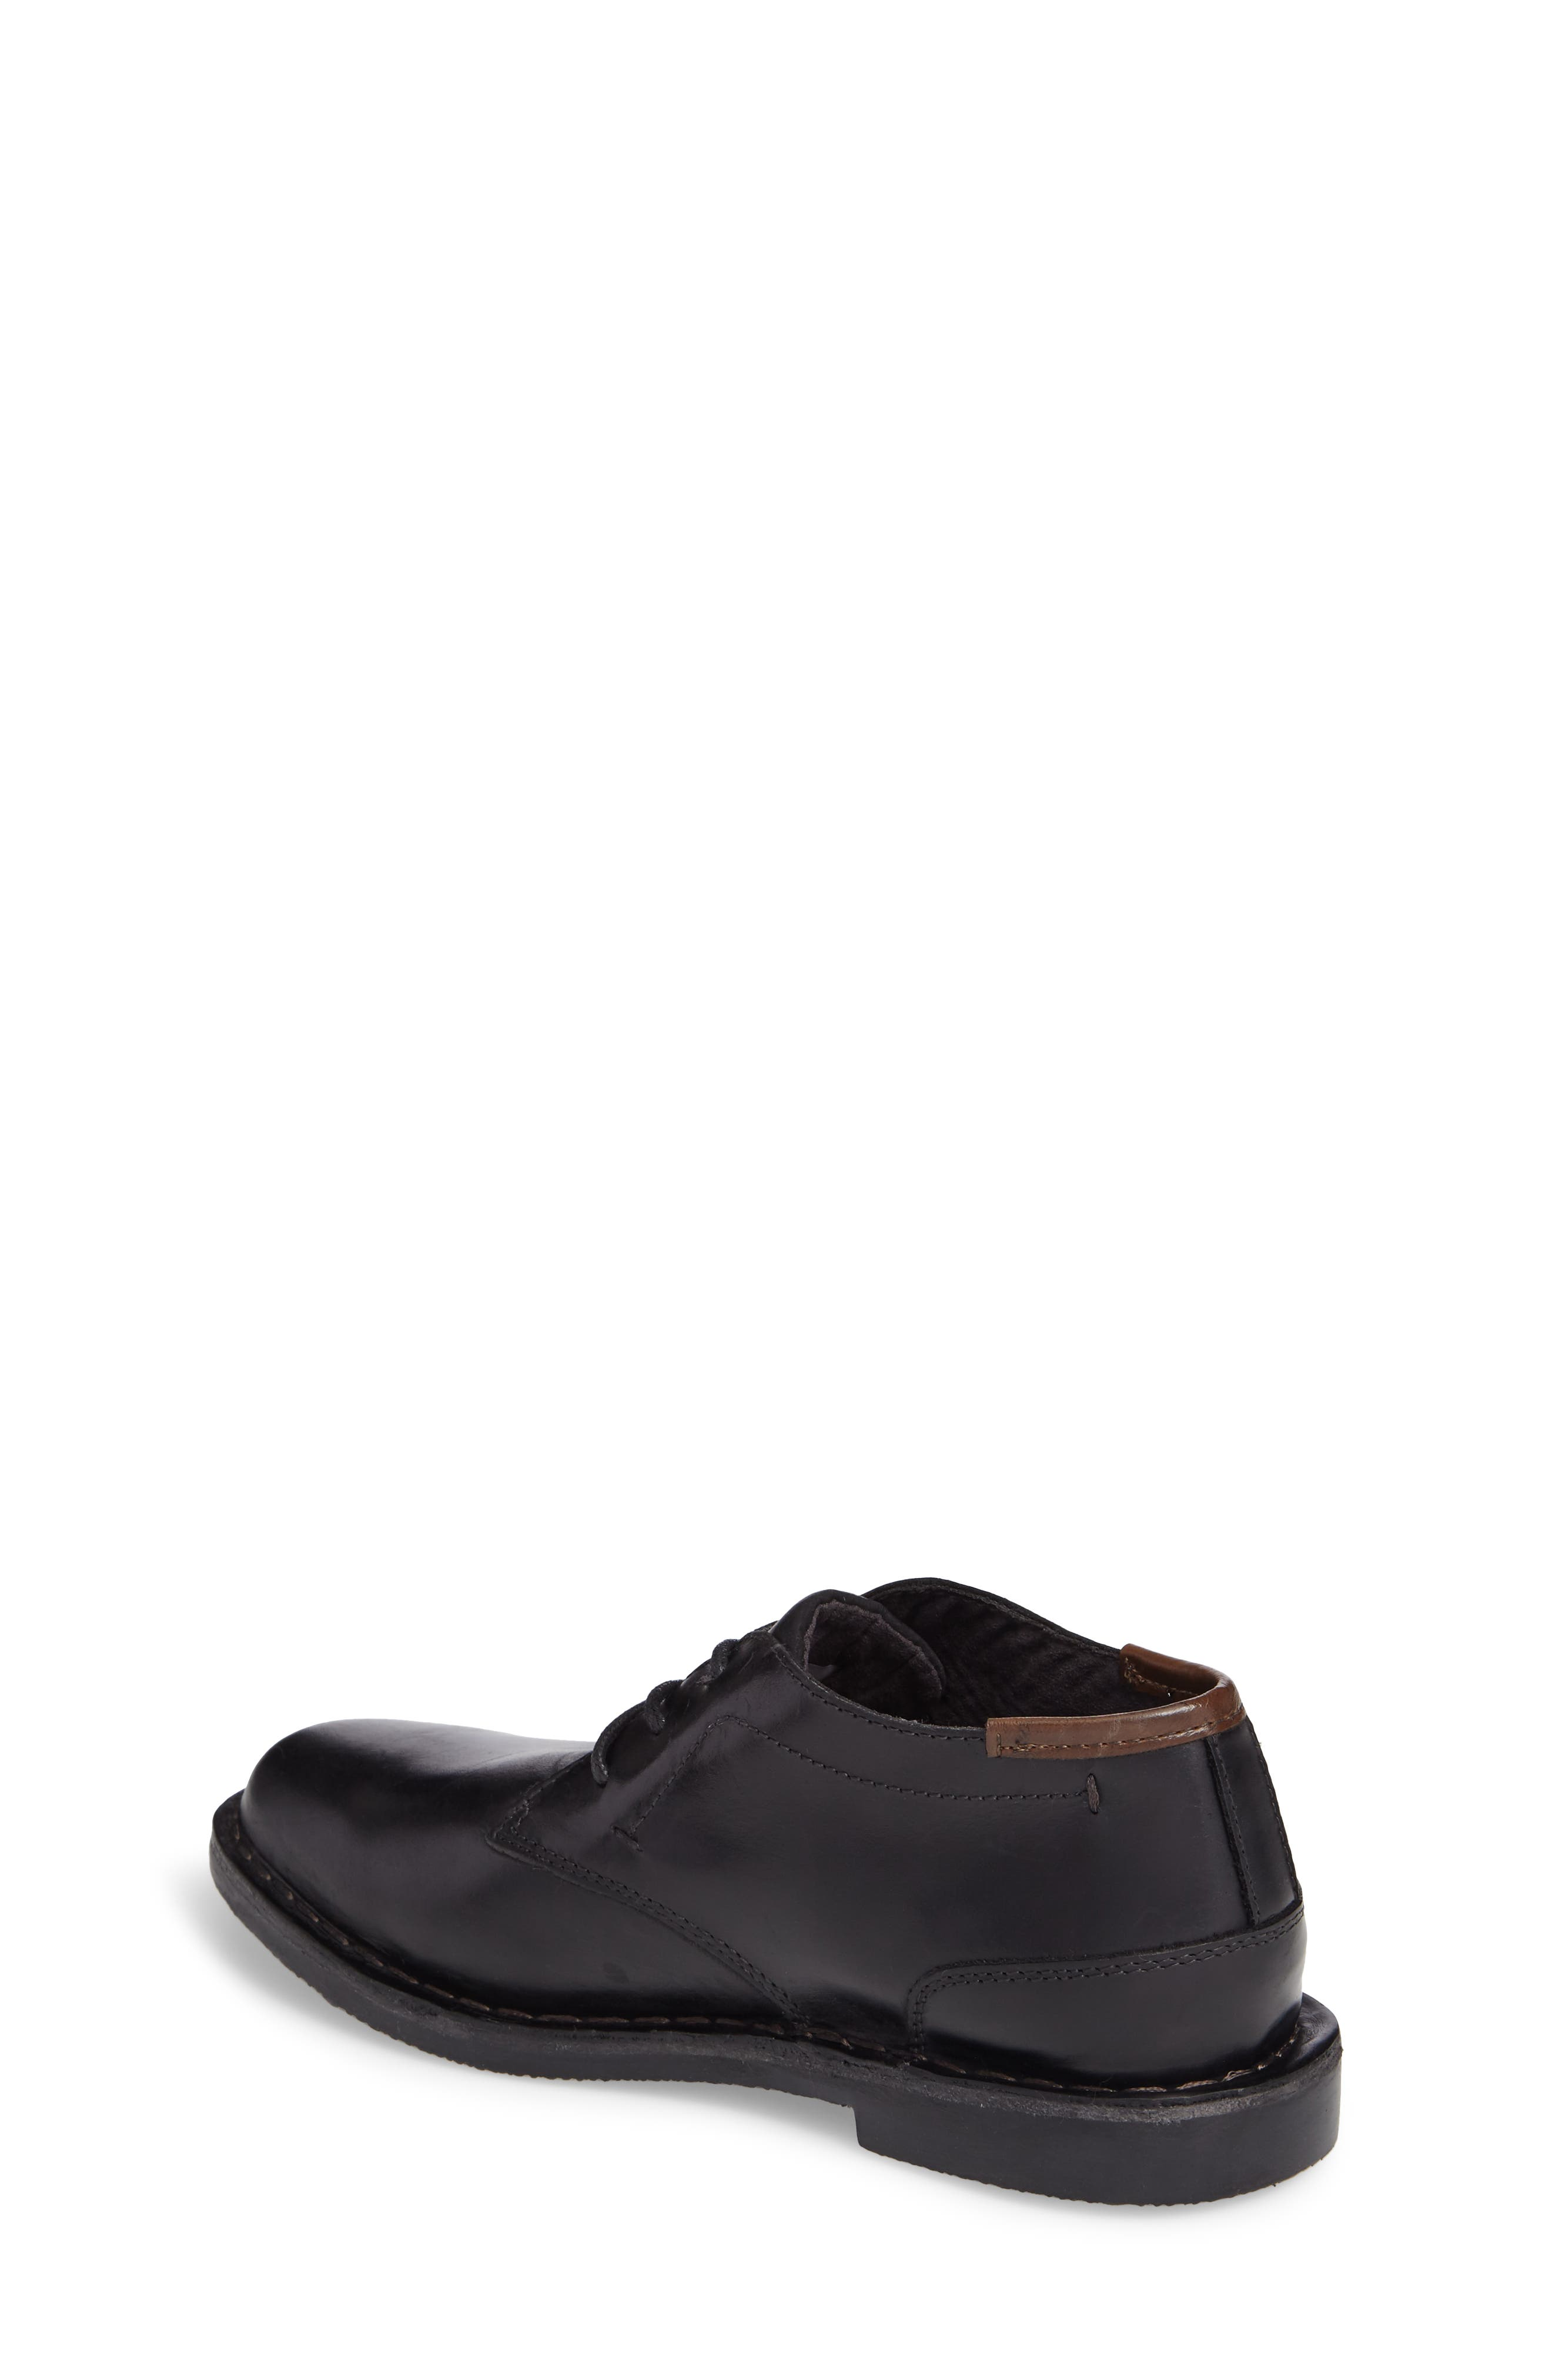 KENNETH COLE NEW YORK, Real Deal Chukka Boot, Alternate thumbnail 2, color, BLACK LEATHER